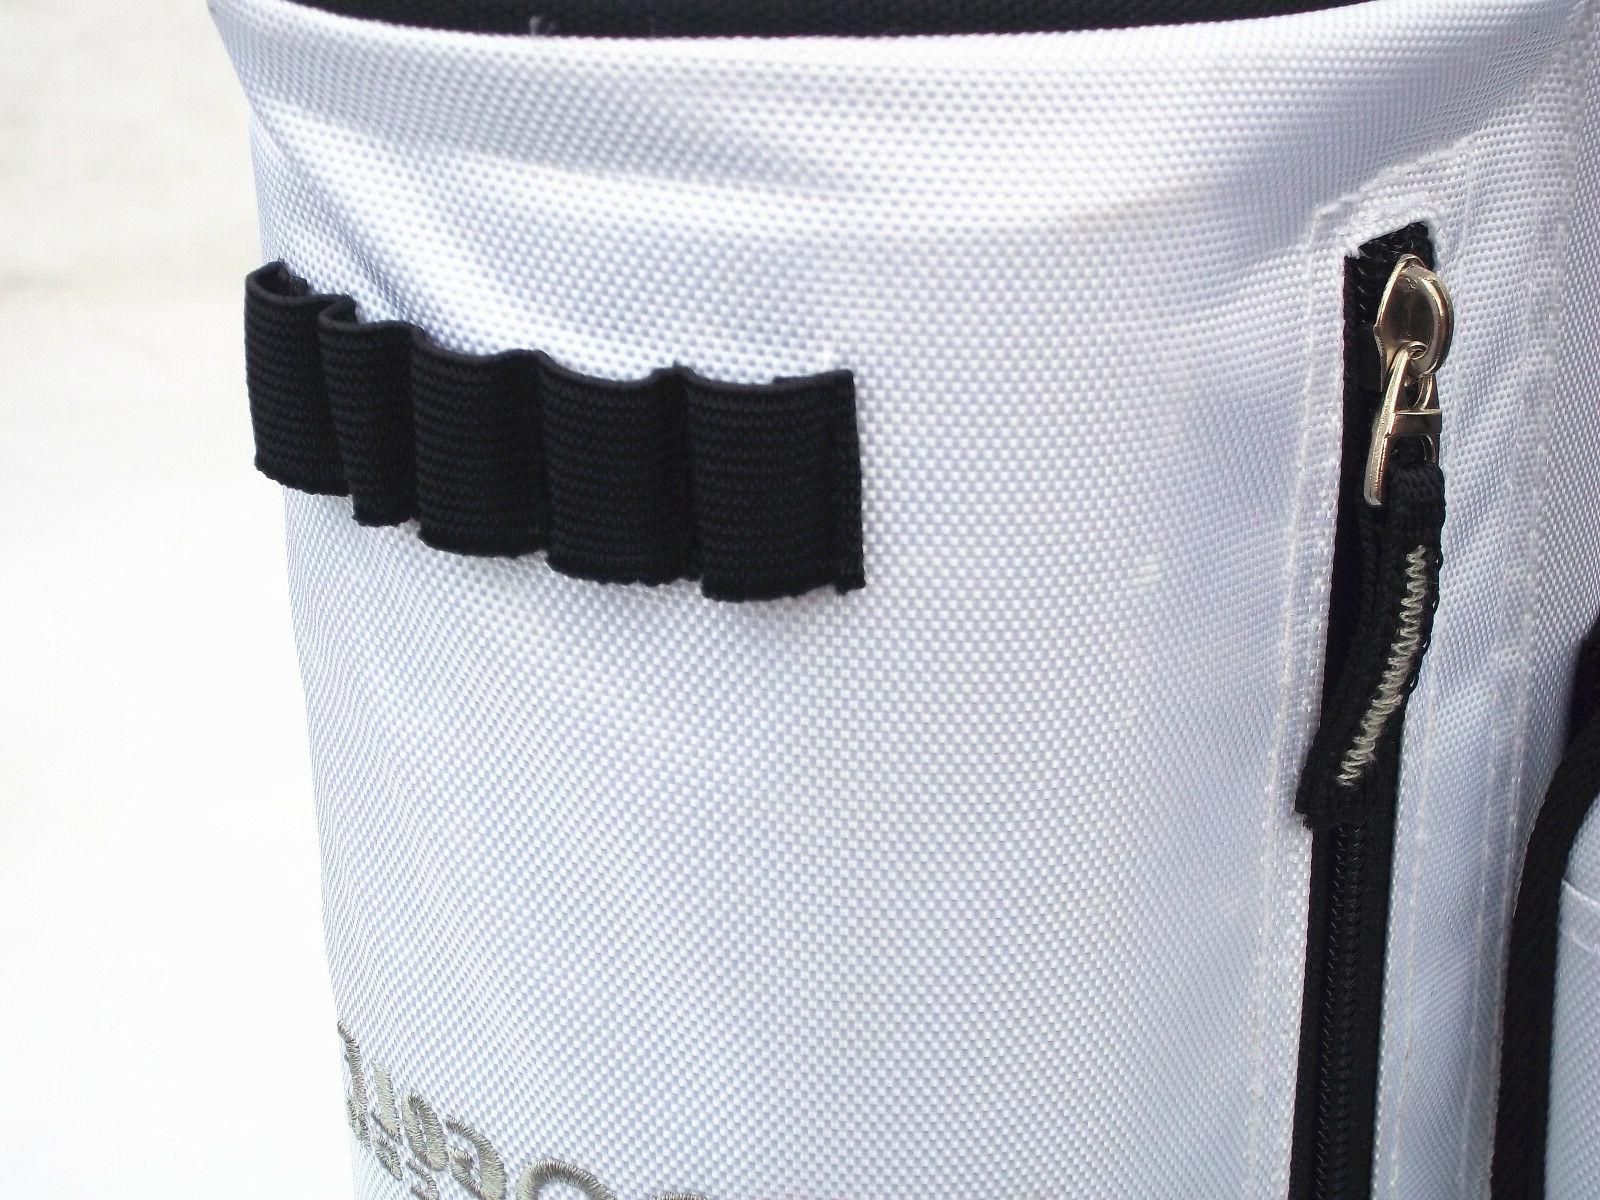 C4 A99 Sunday Bag Removable Top stand